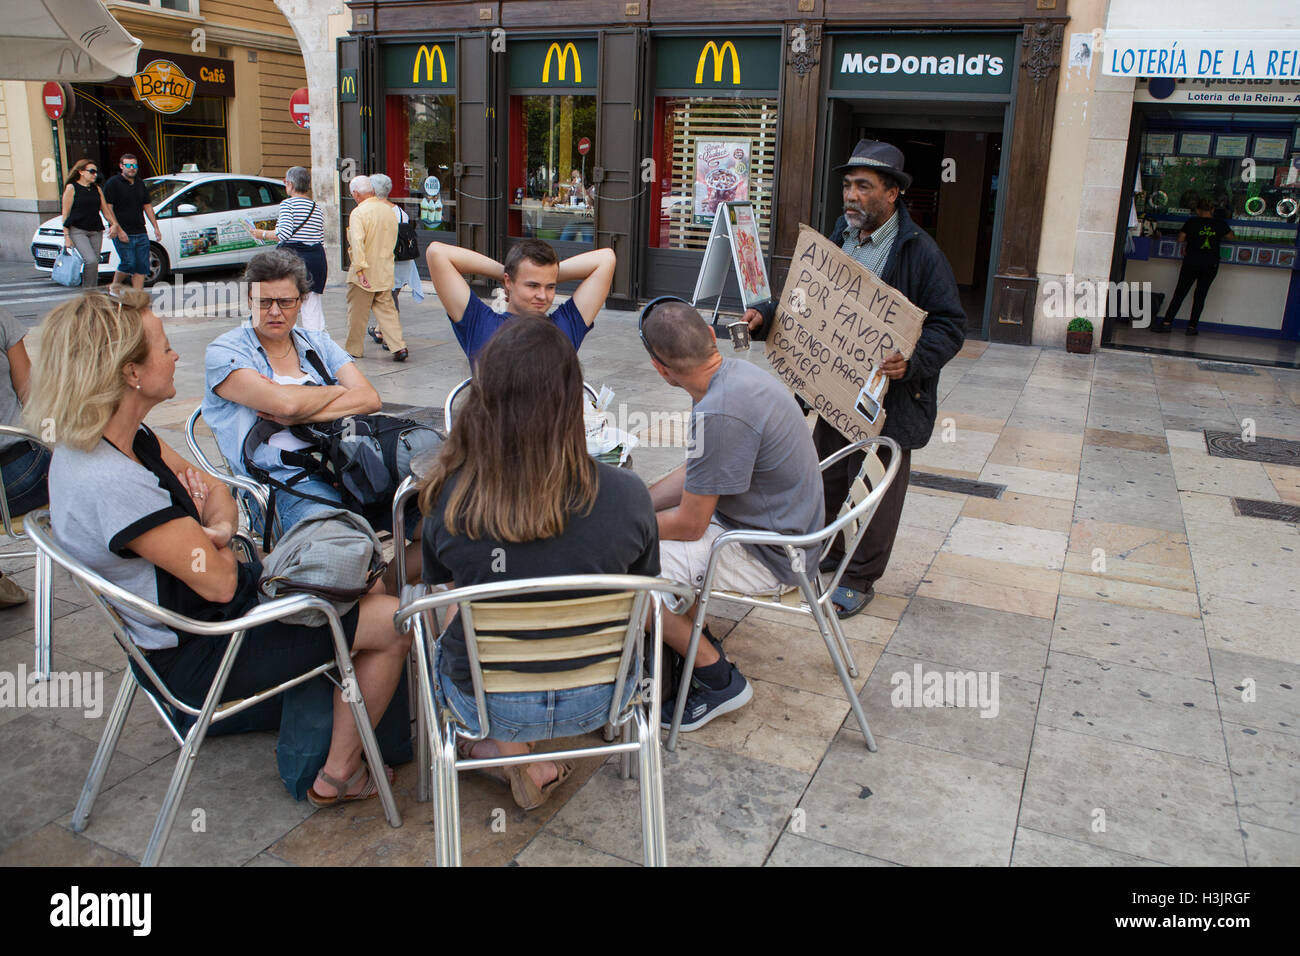 A beggar asks tourists for money outside a McDonalds restaurant in the old quarter of Valencia - Stock Image